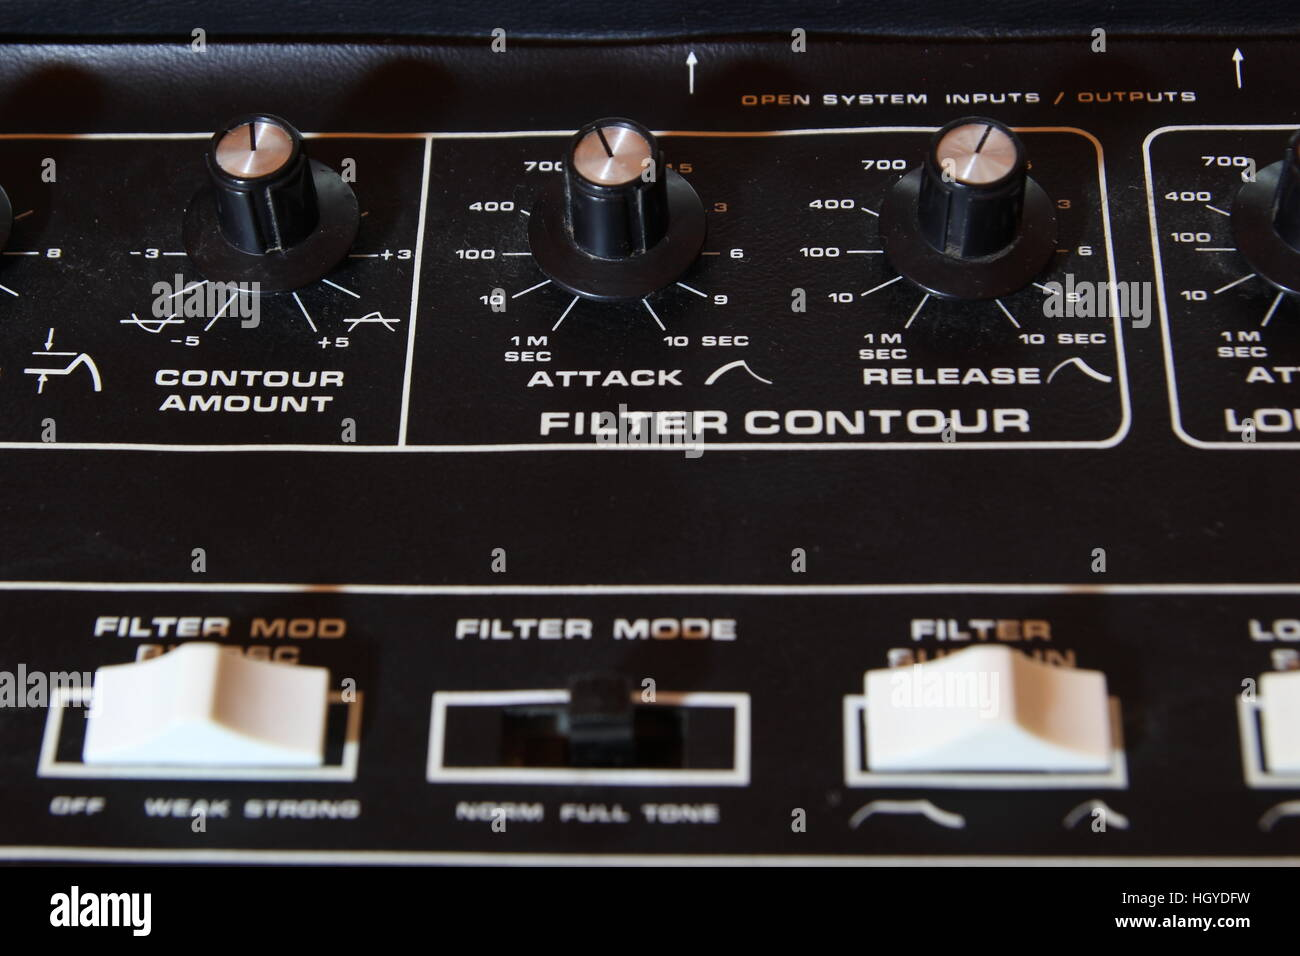 Vintage analogue music synthesizer control panel closeup in shallow focus - Stock Image